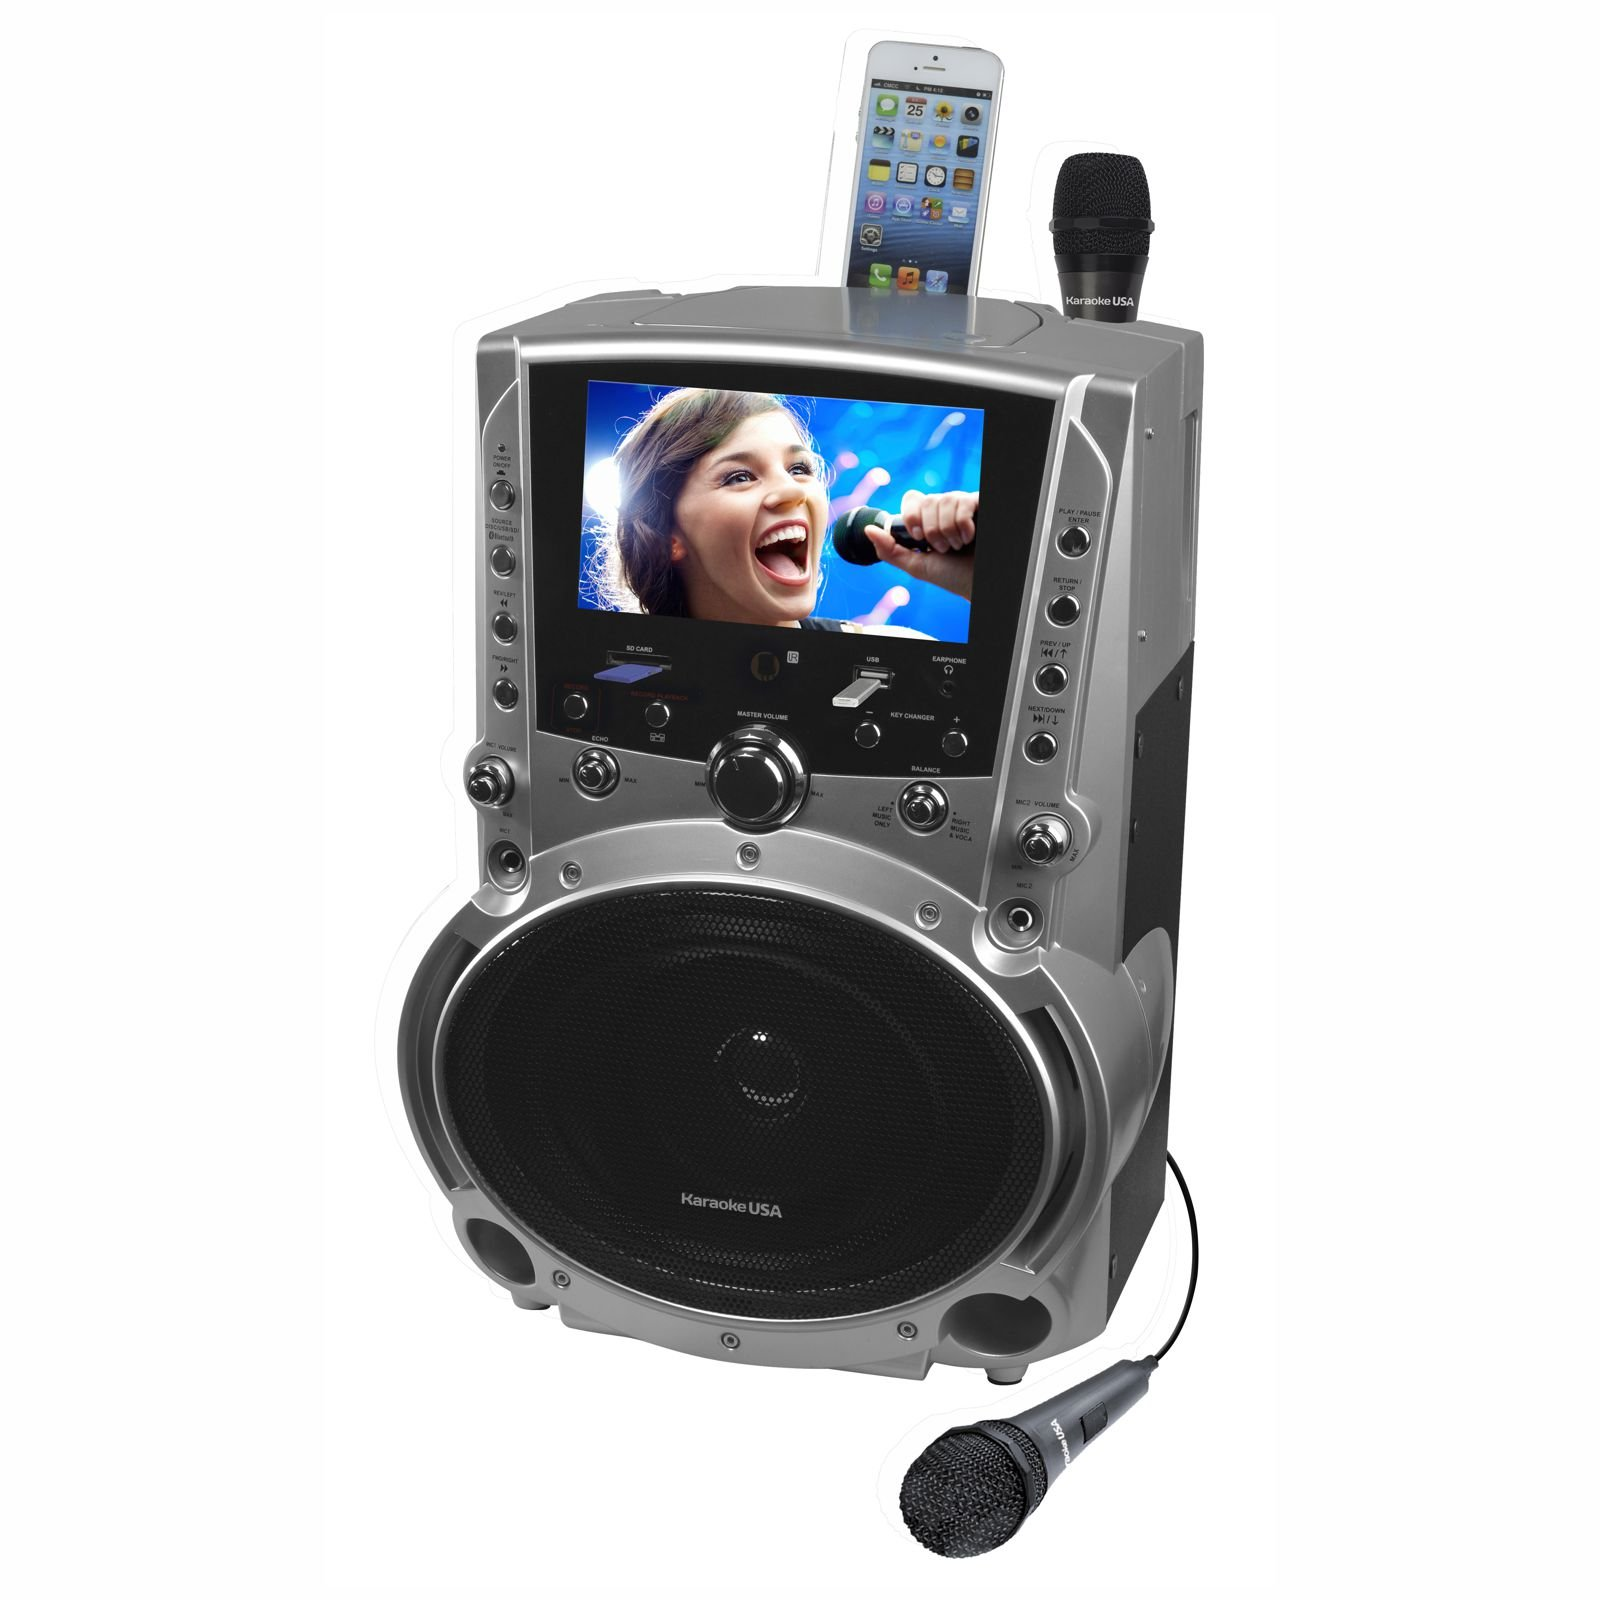 Karaoke USA GF757 50 Watt Bluetooth DVD CD+G MP3+G Karaoke System with 7-Inch TFT Color Screen and Record Function by Karaoke USA